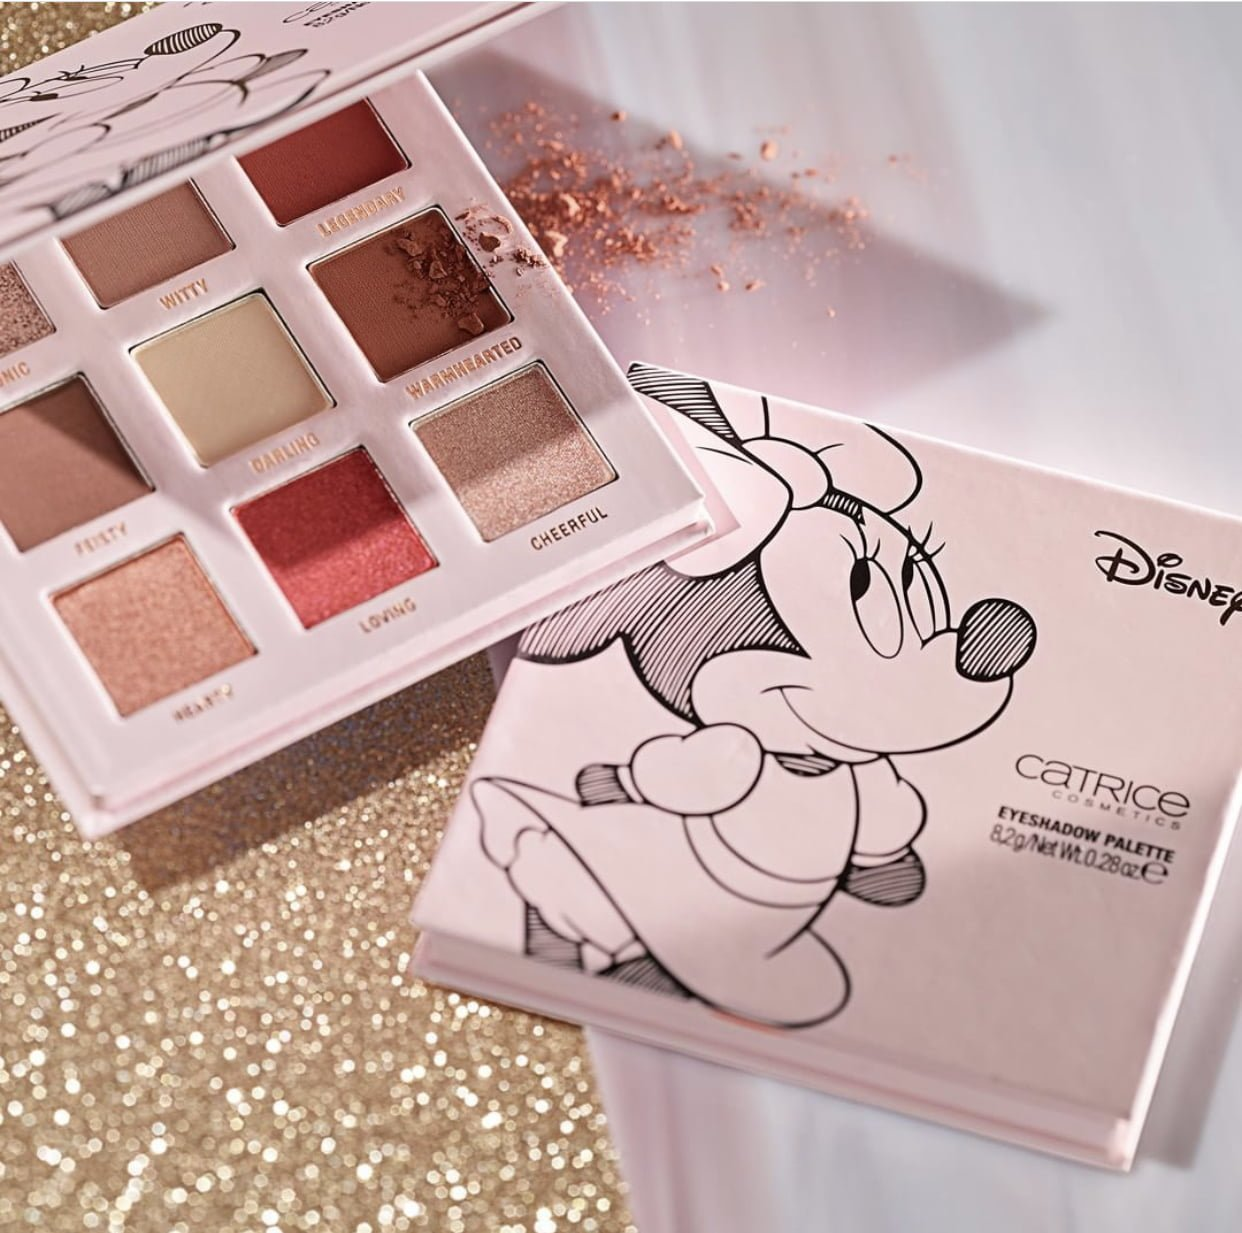 Catrice x Disney Minnie and Daisy Collection